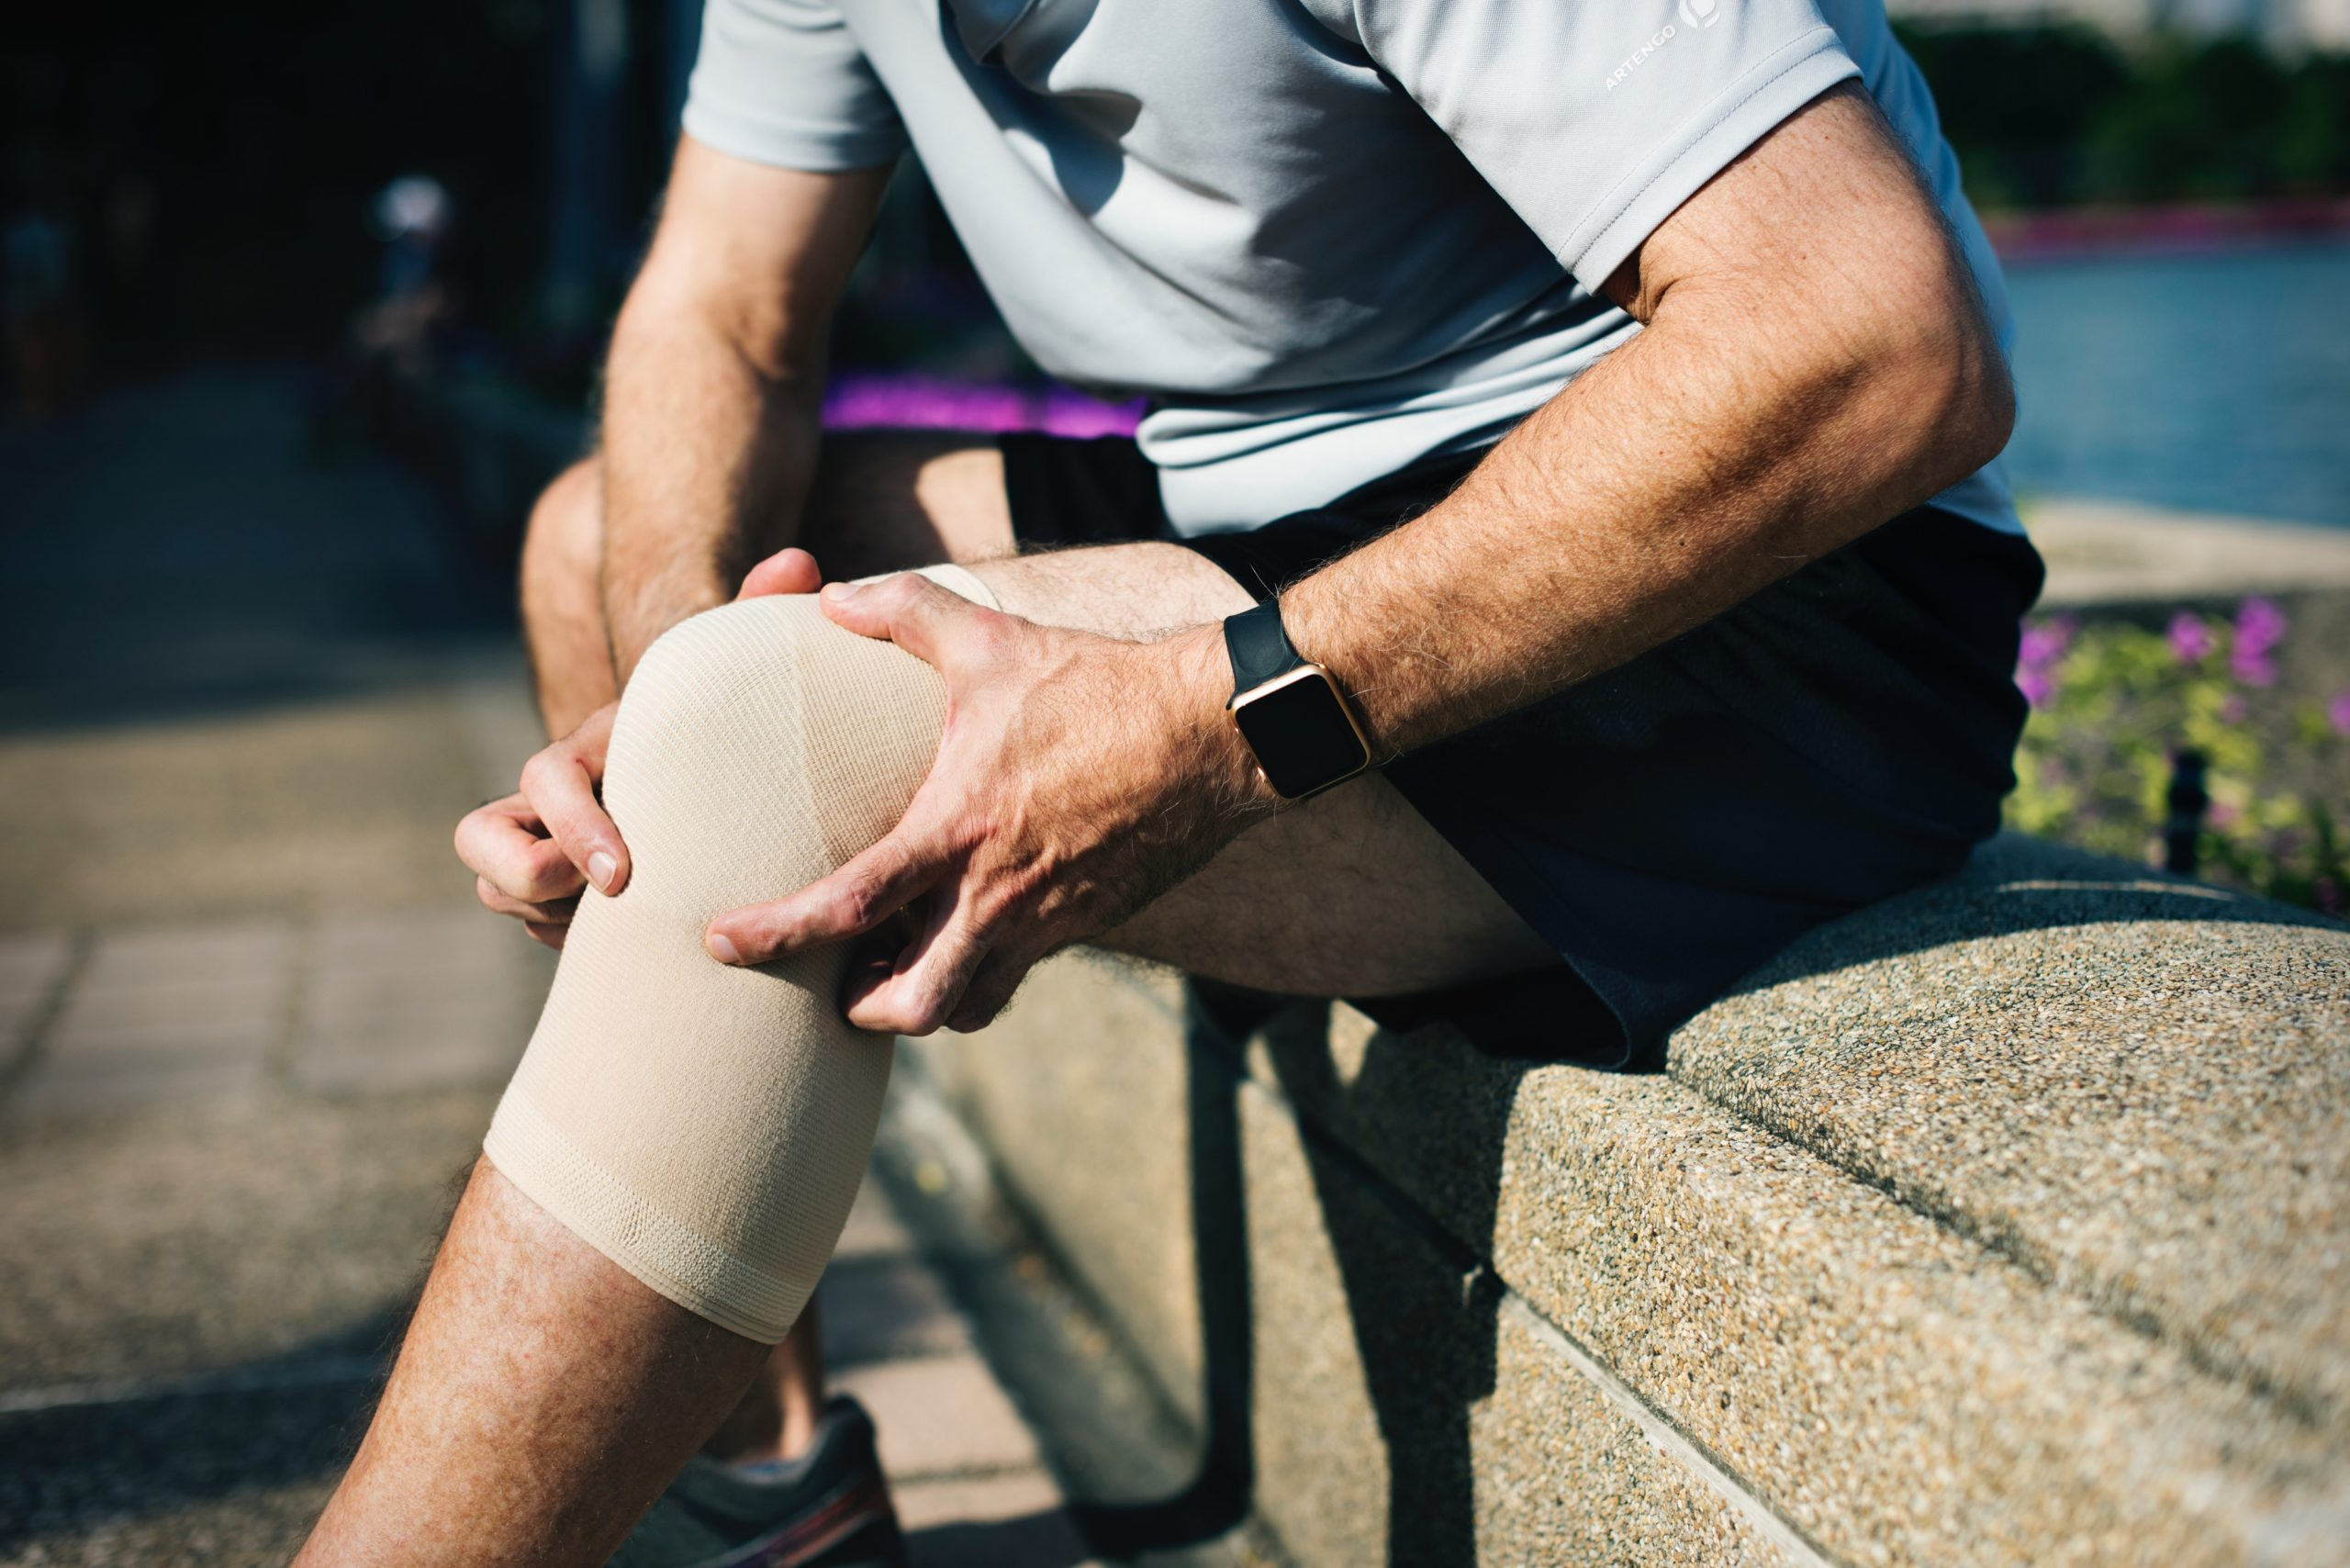 Injury rehabilitation programme for knee injuries: a man holding his injured knees